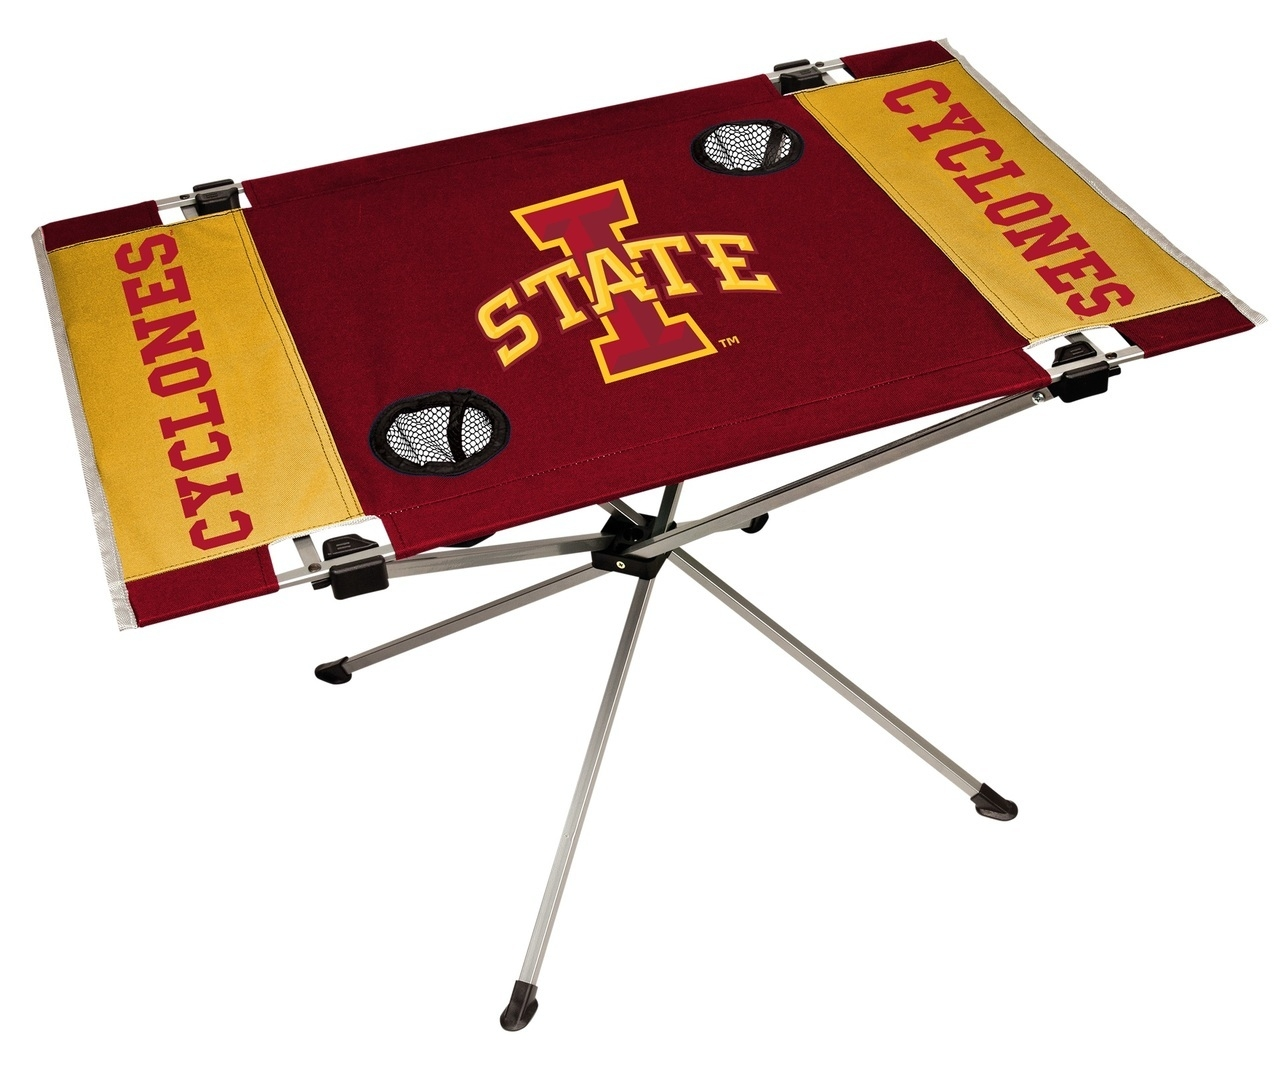 Iowa State Cyclones Table Endzone Style - 1509940553 - Ncaa College Iowa State Isu Cyclones Bath 1509940553